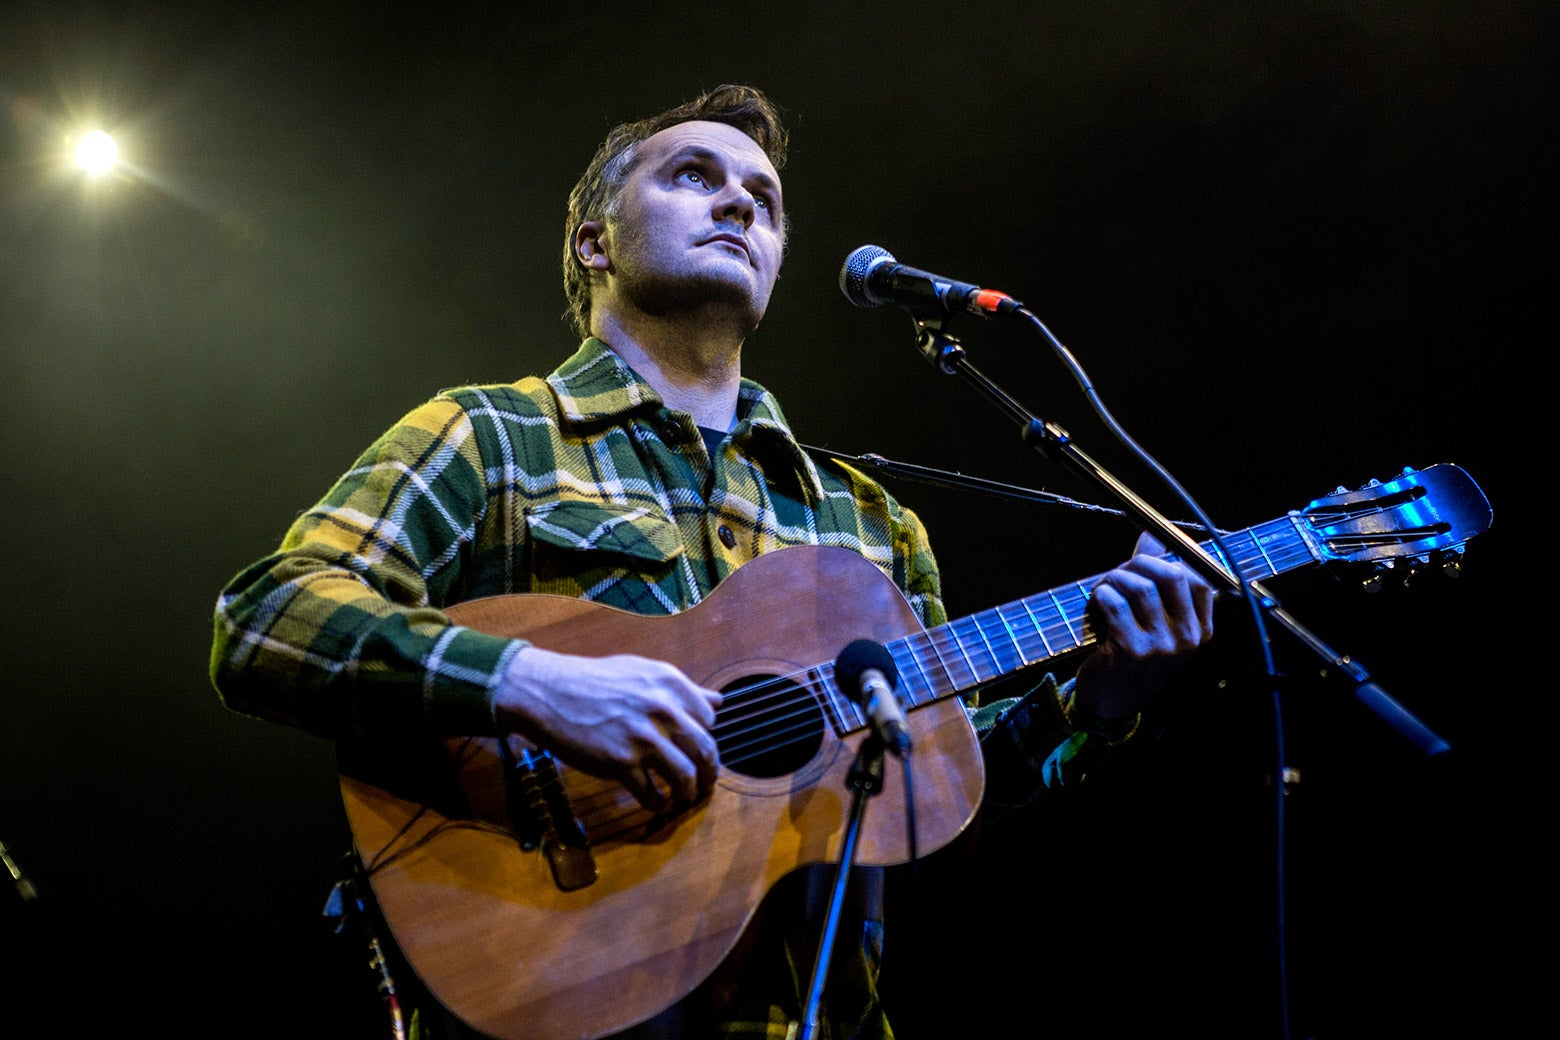 Phil Elverum performs during the When We Were Young Festival 2017 at the Observatory on April 8 in Santa Ana, California.